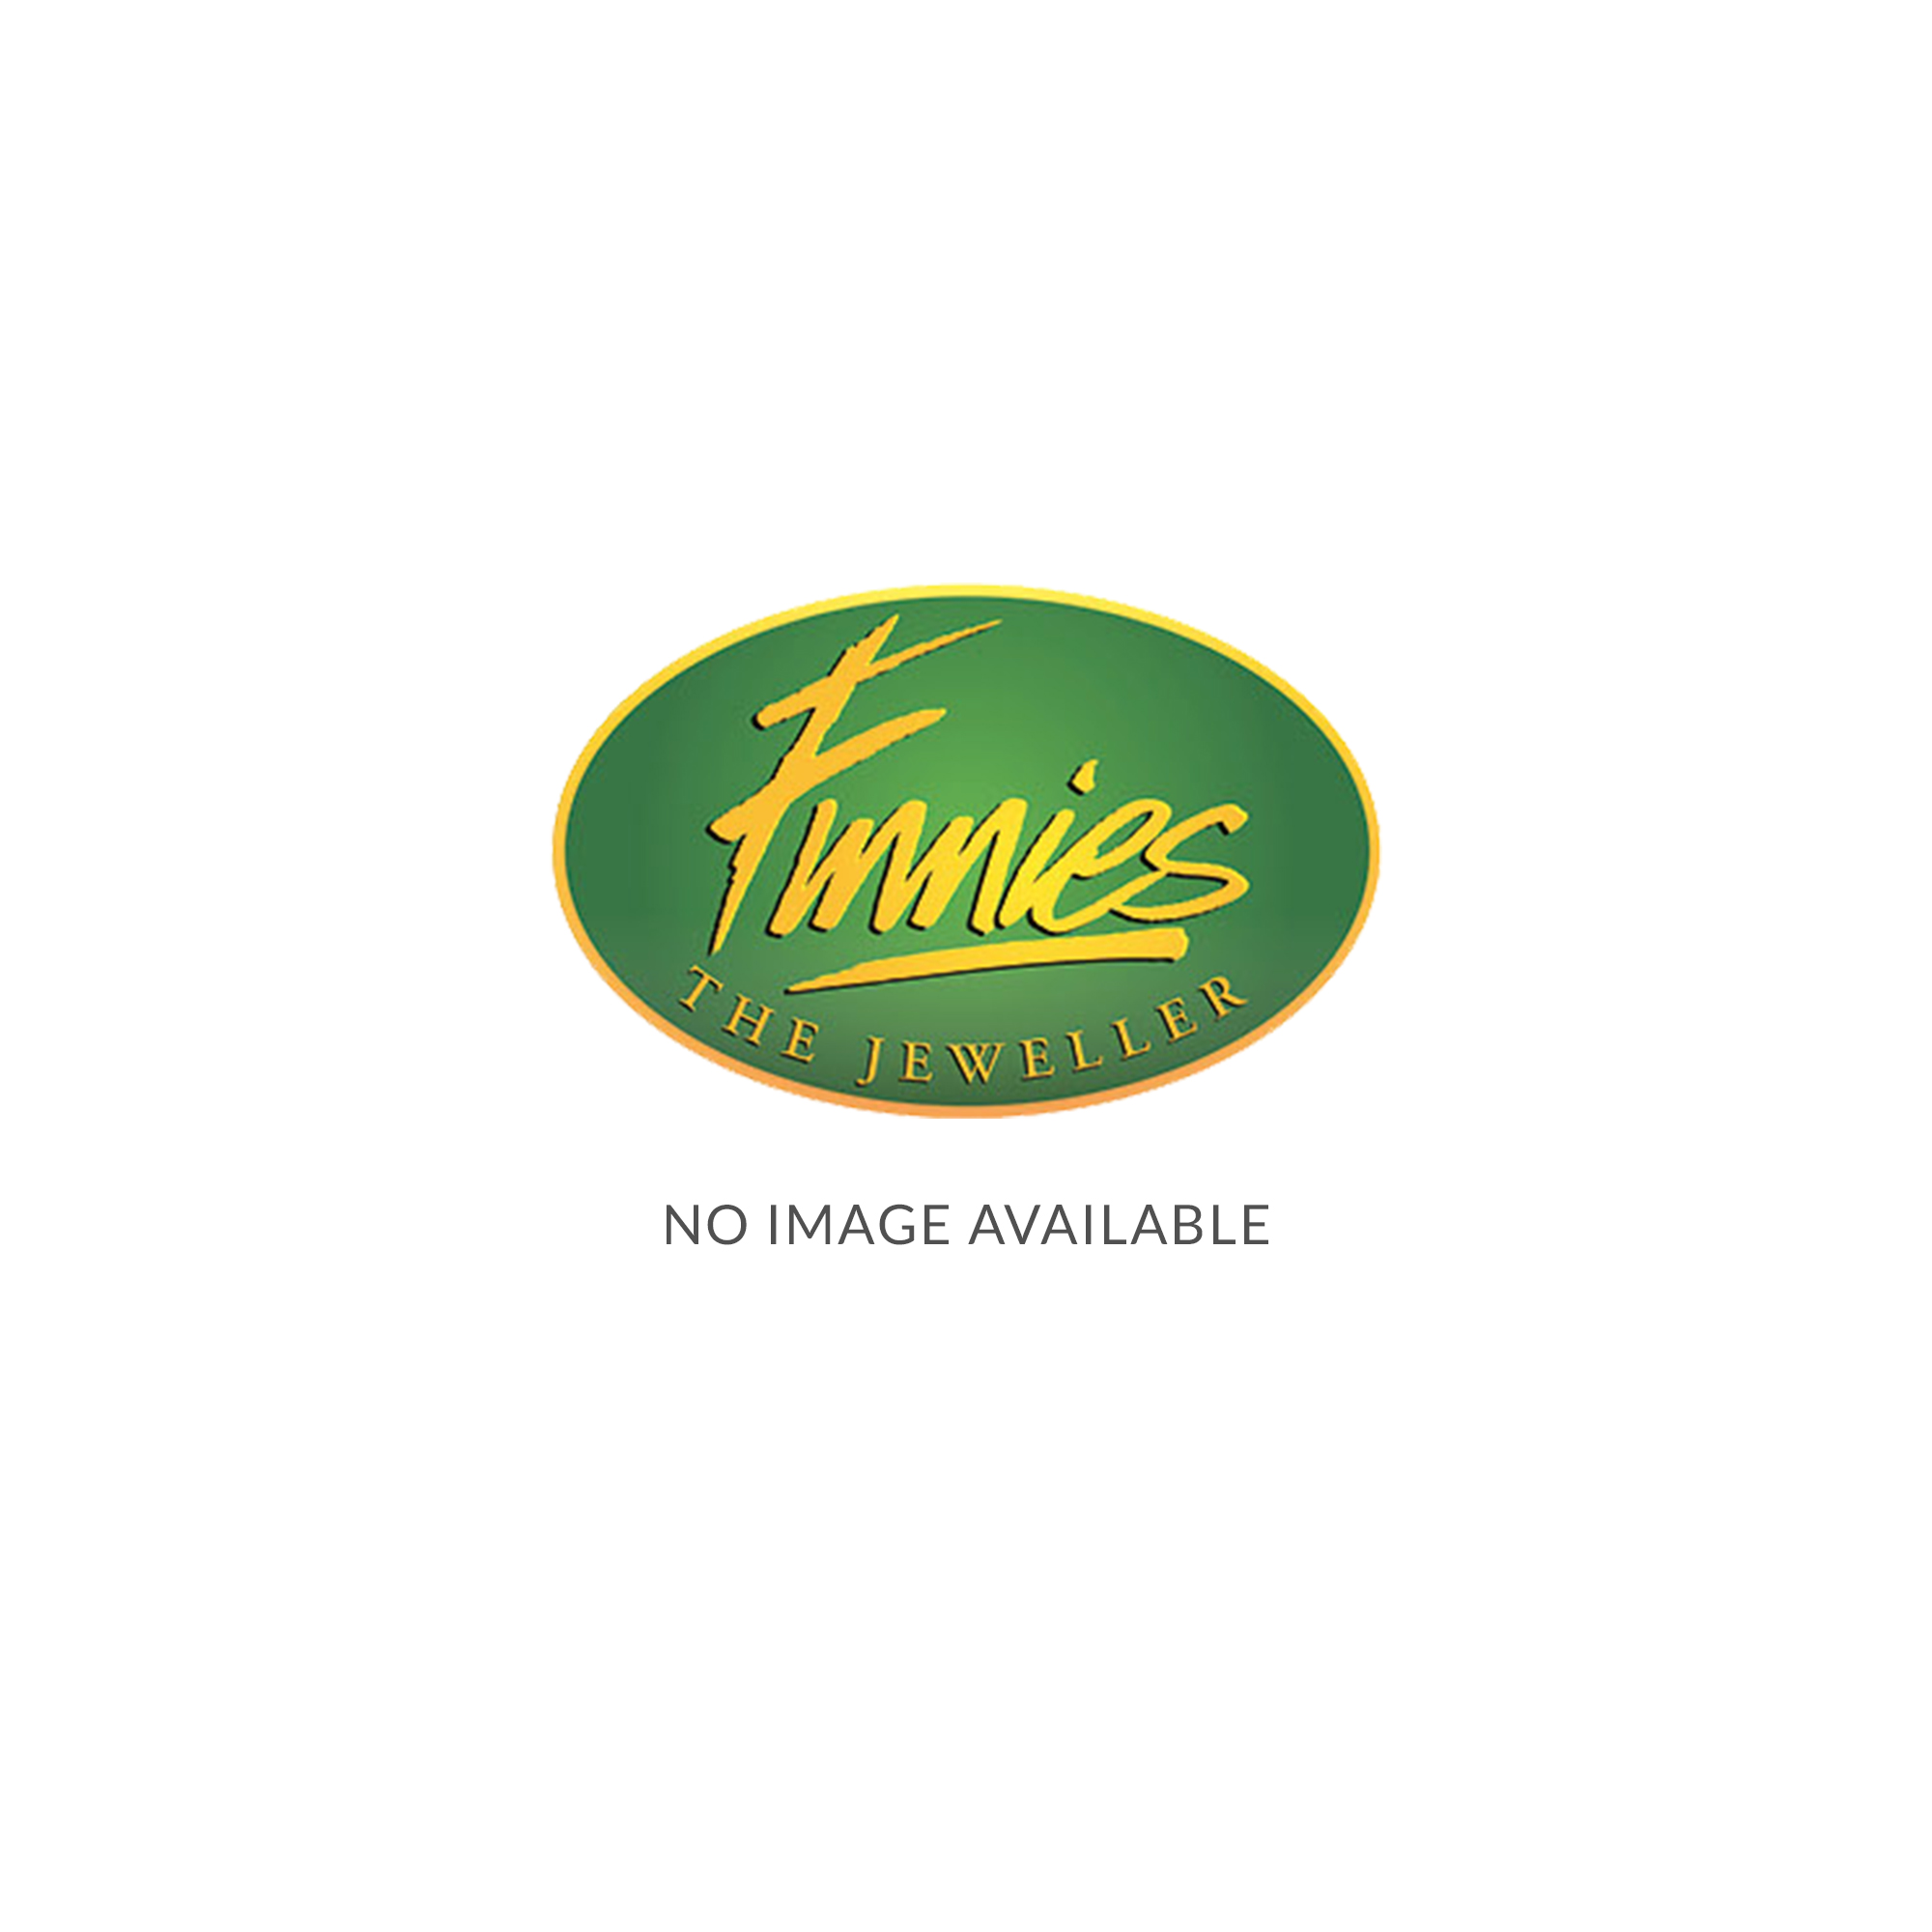 Finnies the Jewellers Sale